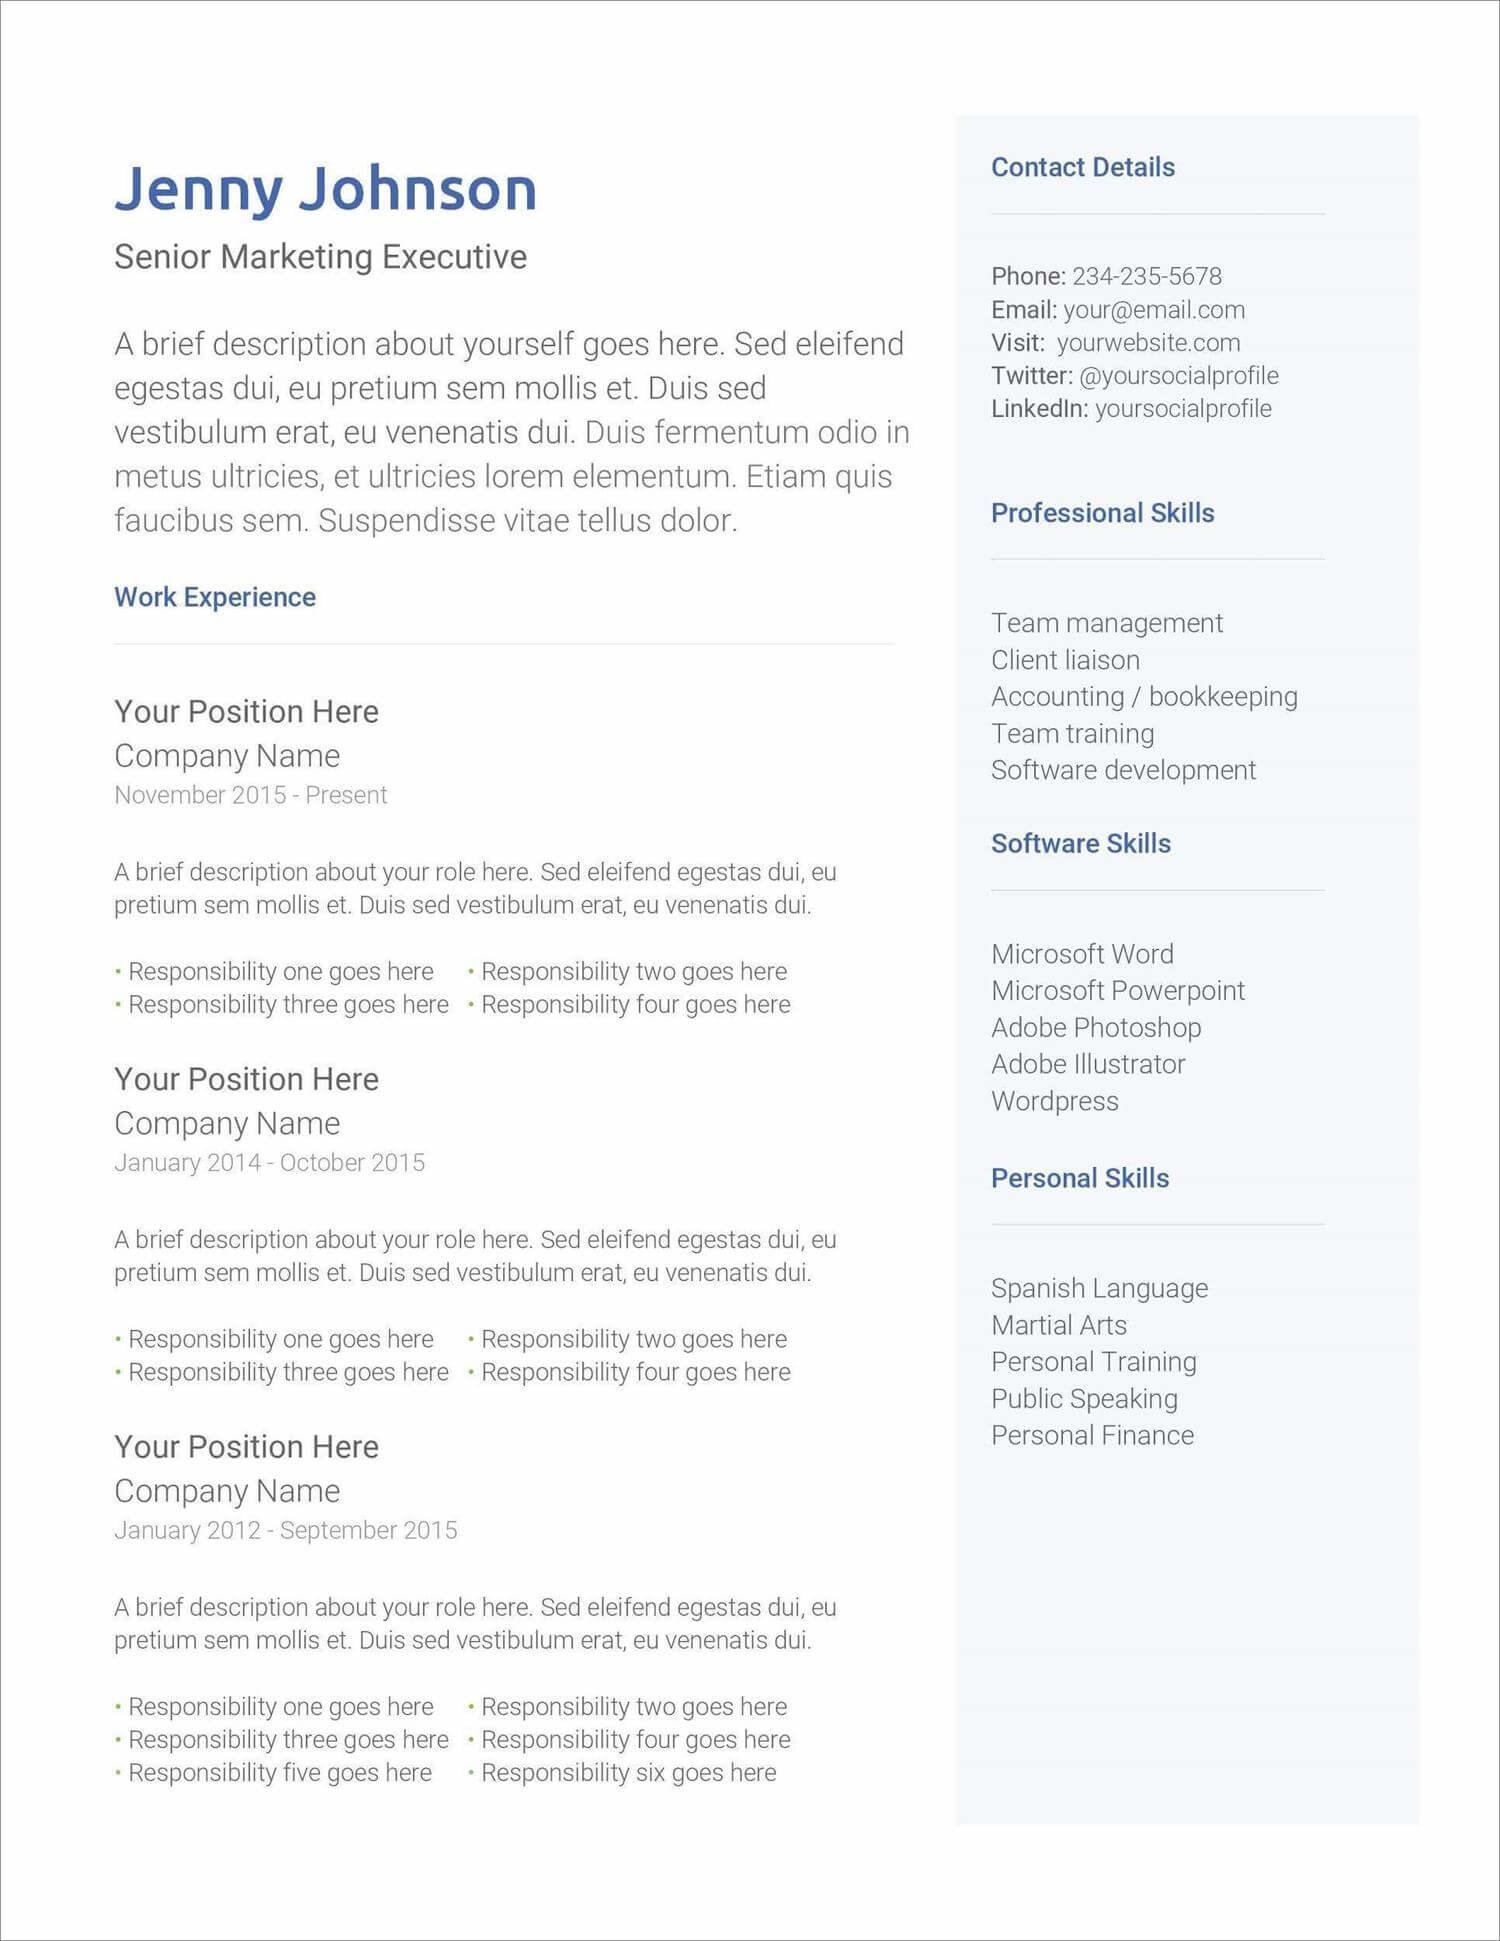 free resume templates for to now current new animator fresher softball player template Resume Free Current Resume Templates